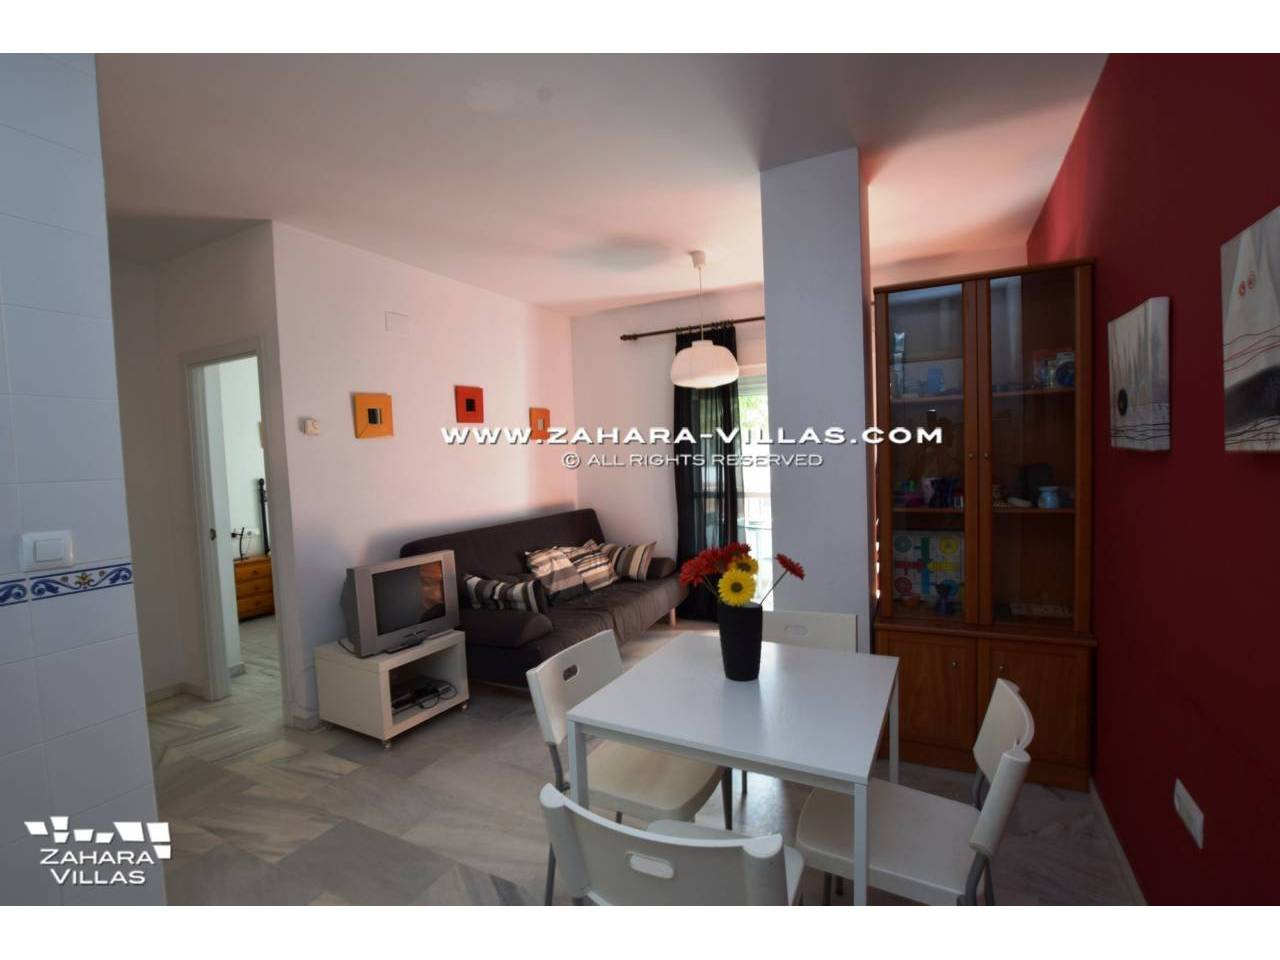 Imagen 3 de Apartment for sale in Urb. Aretusa - Zahara Pueblo